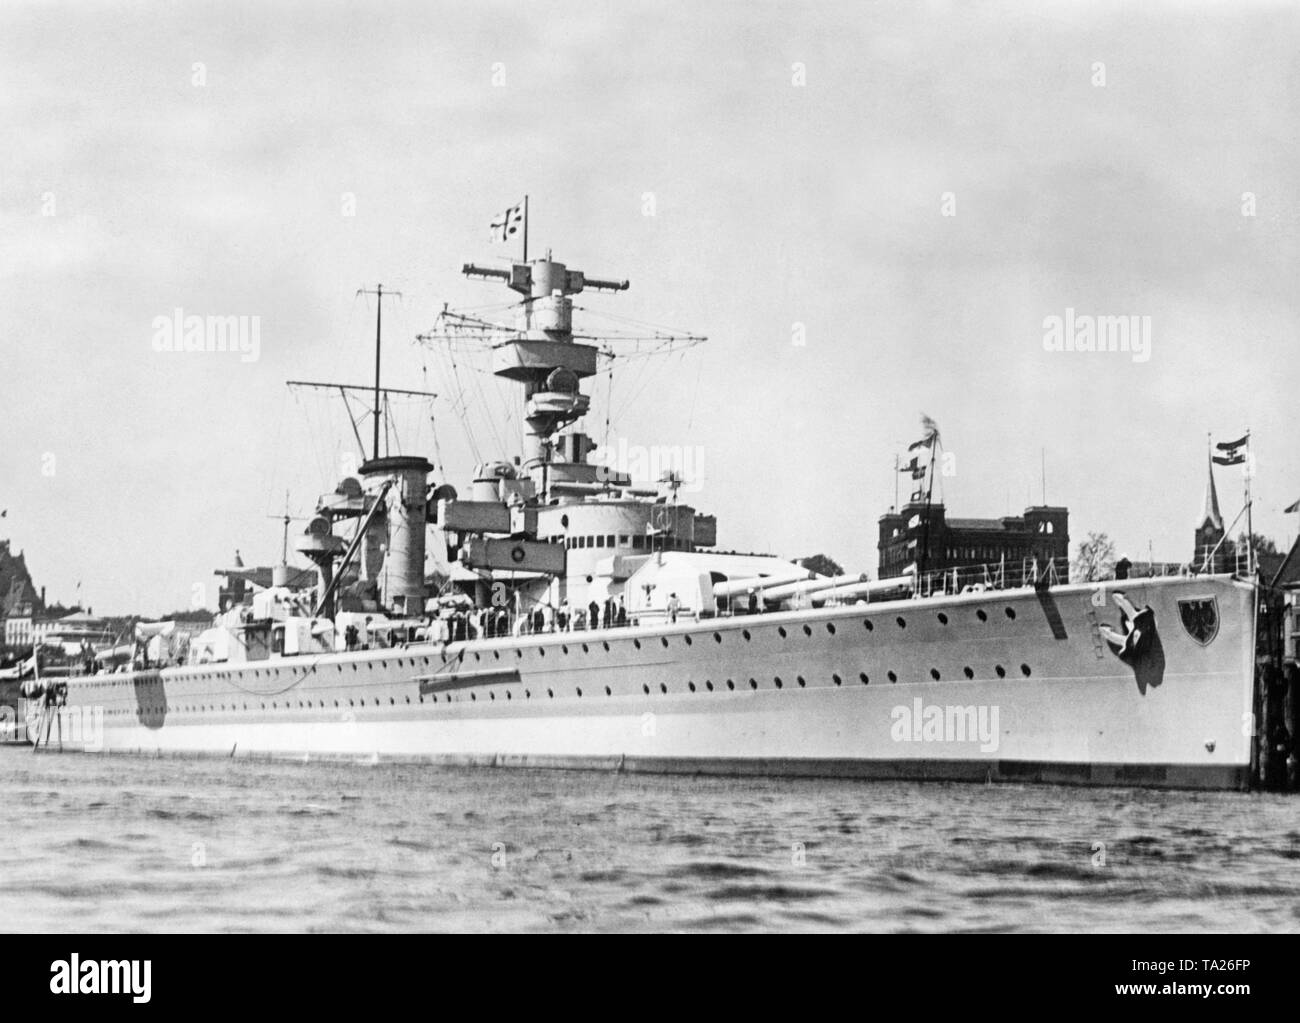 Picture of the German cruiser Deutschland before 1935 in the Kieler Foerde before 1935. In front and behind are two gun turrets with six 28cm Schiffskanone. The German naval ensign (Goesch) of the German Reich (1933-1935 without the swastika) blows in front and behind. - Stock Image